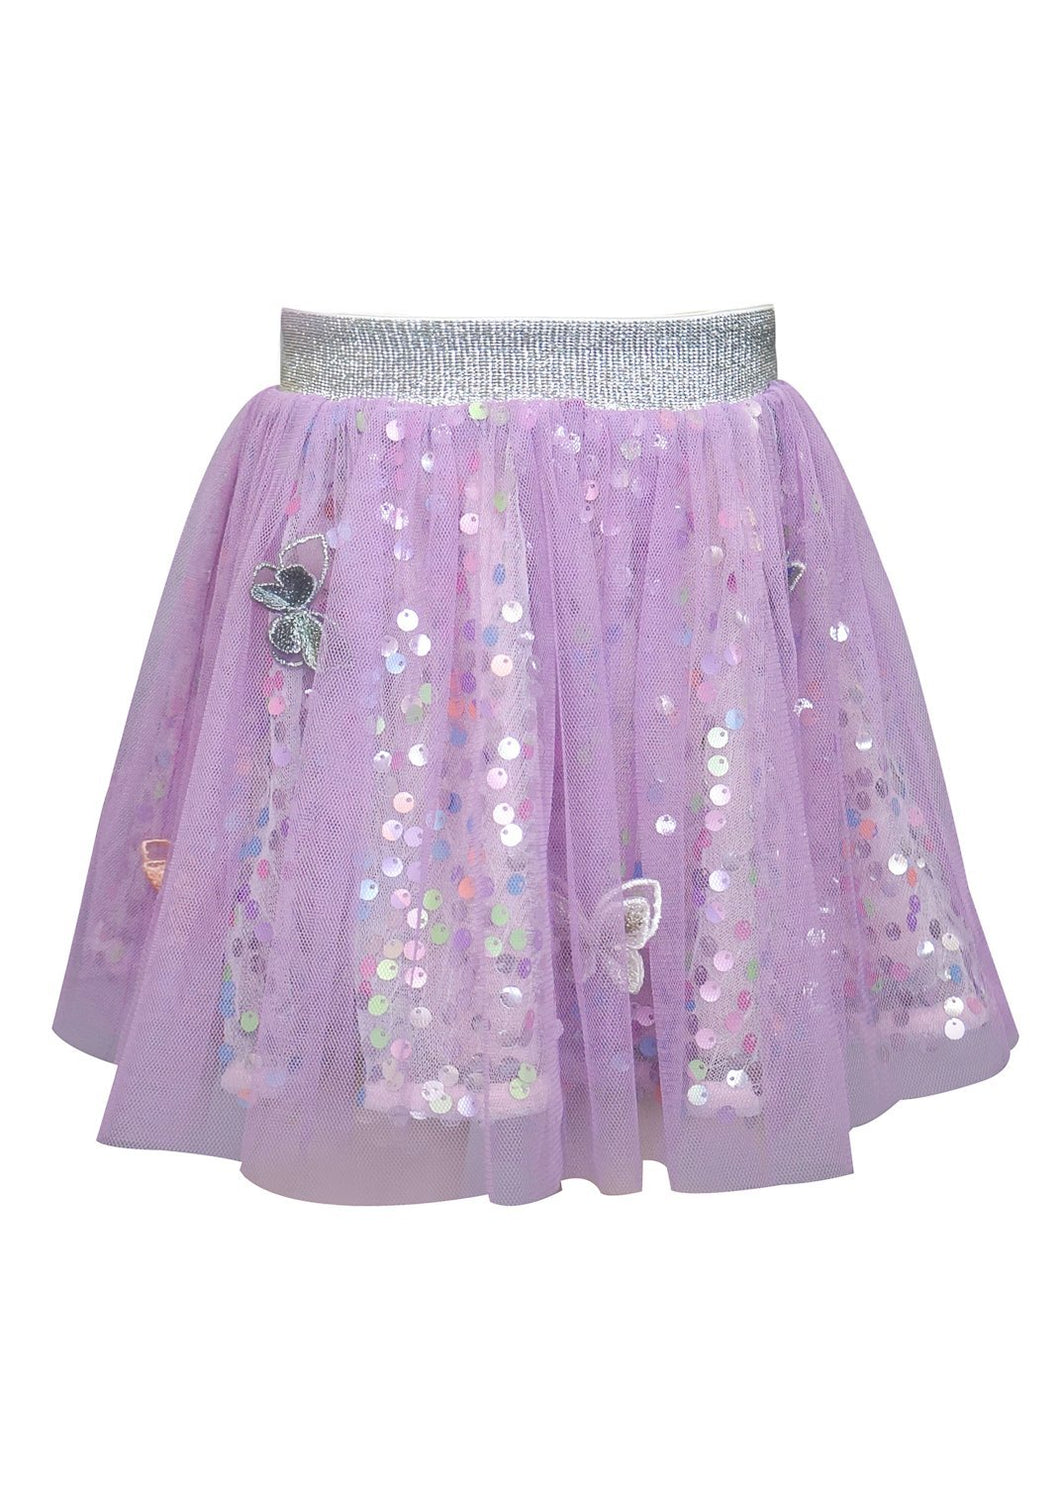 Baby Sara Butterfly Sequin & Mesh Skirt